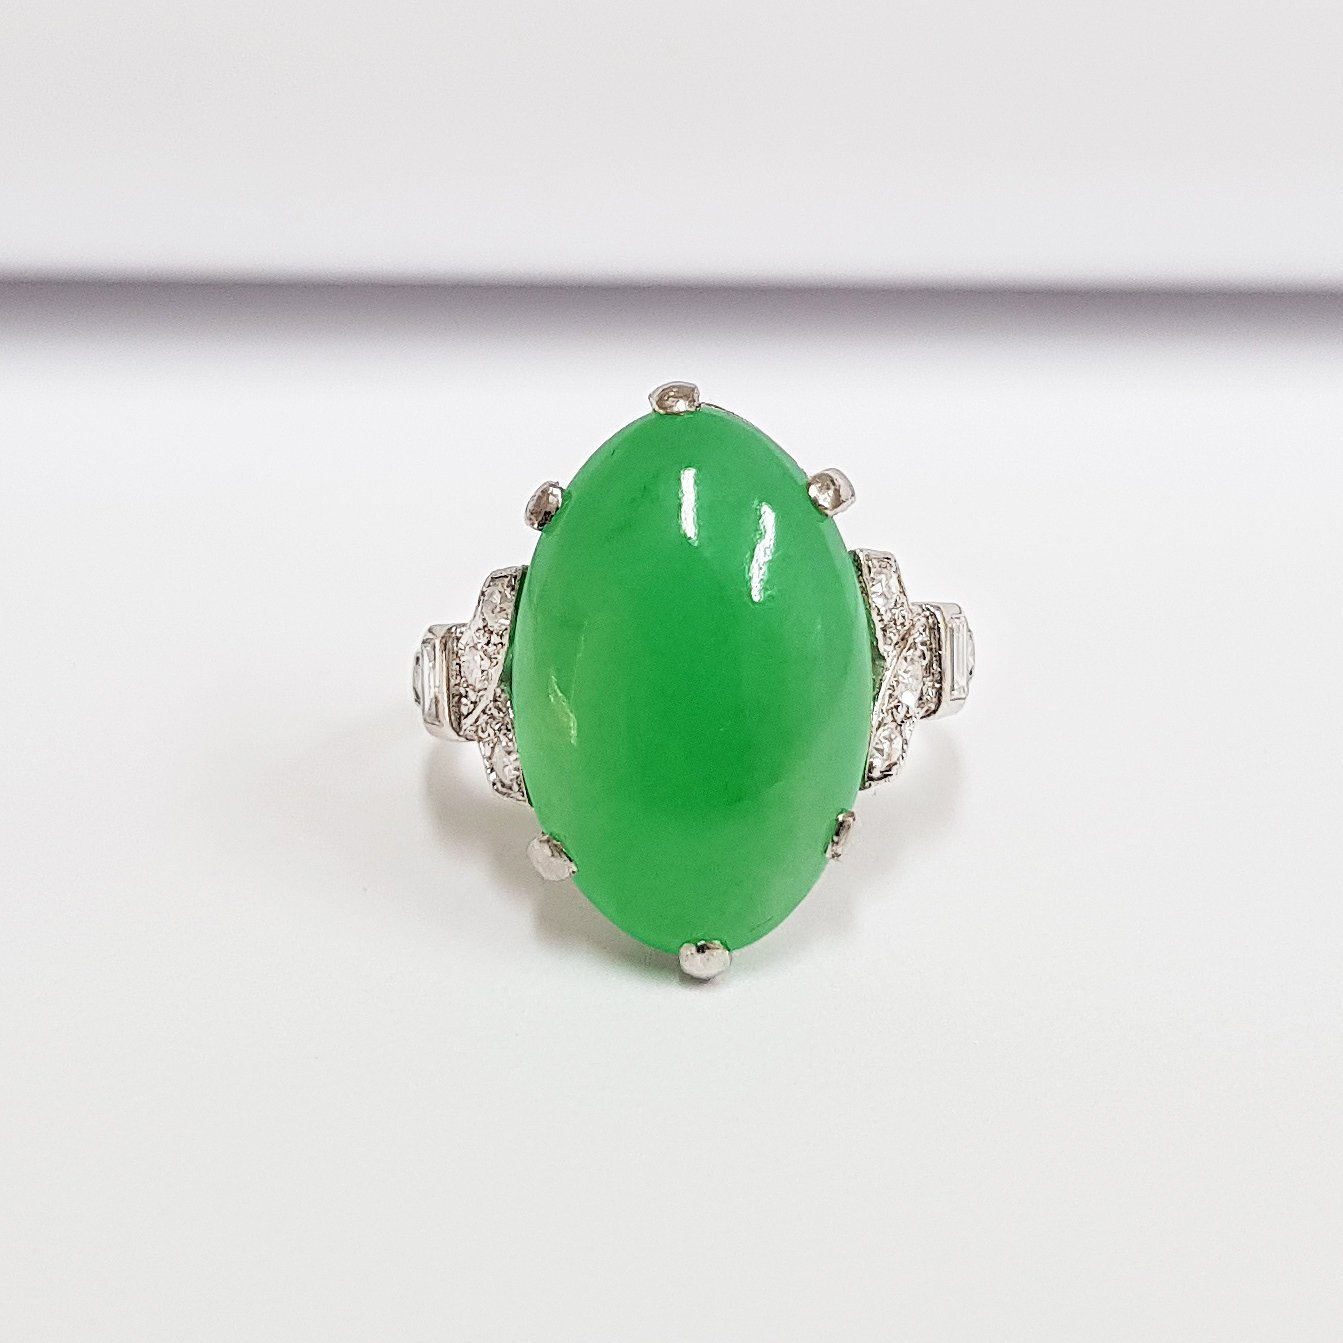 d874dc8df5948 Antique jade and diamond ring circa 1920s art deco in Platinum